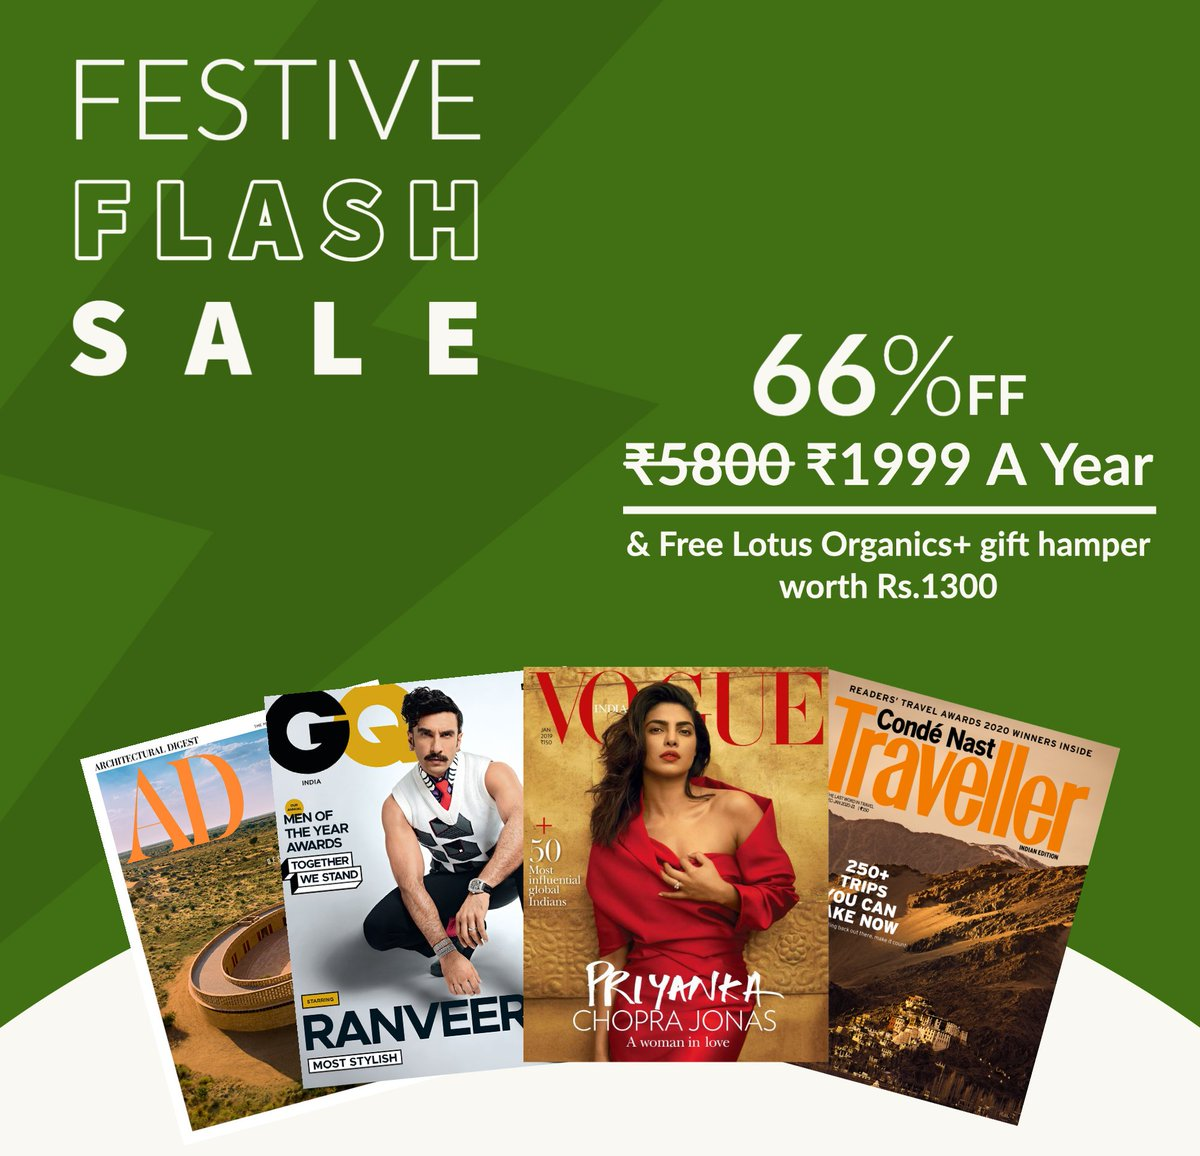 Don't miss out on our limited period Festive Sale. Get 66% off on our annual combo subscription + a free Lotus Organics+ gift hamper worth Rs.1300. Click on the link to subscribe now.